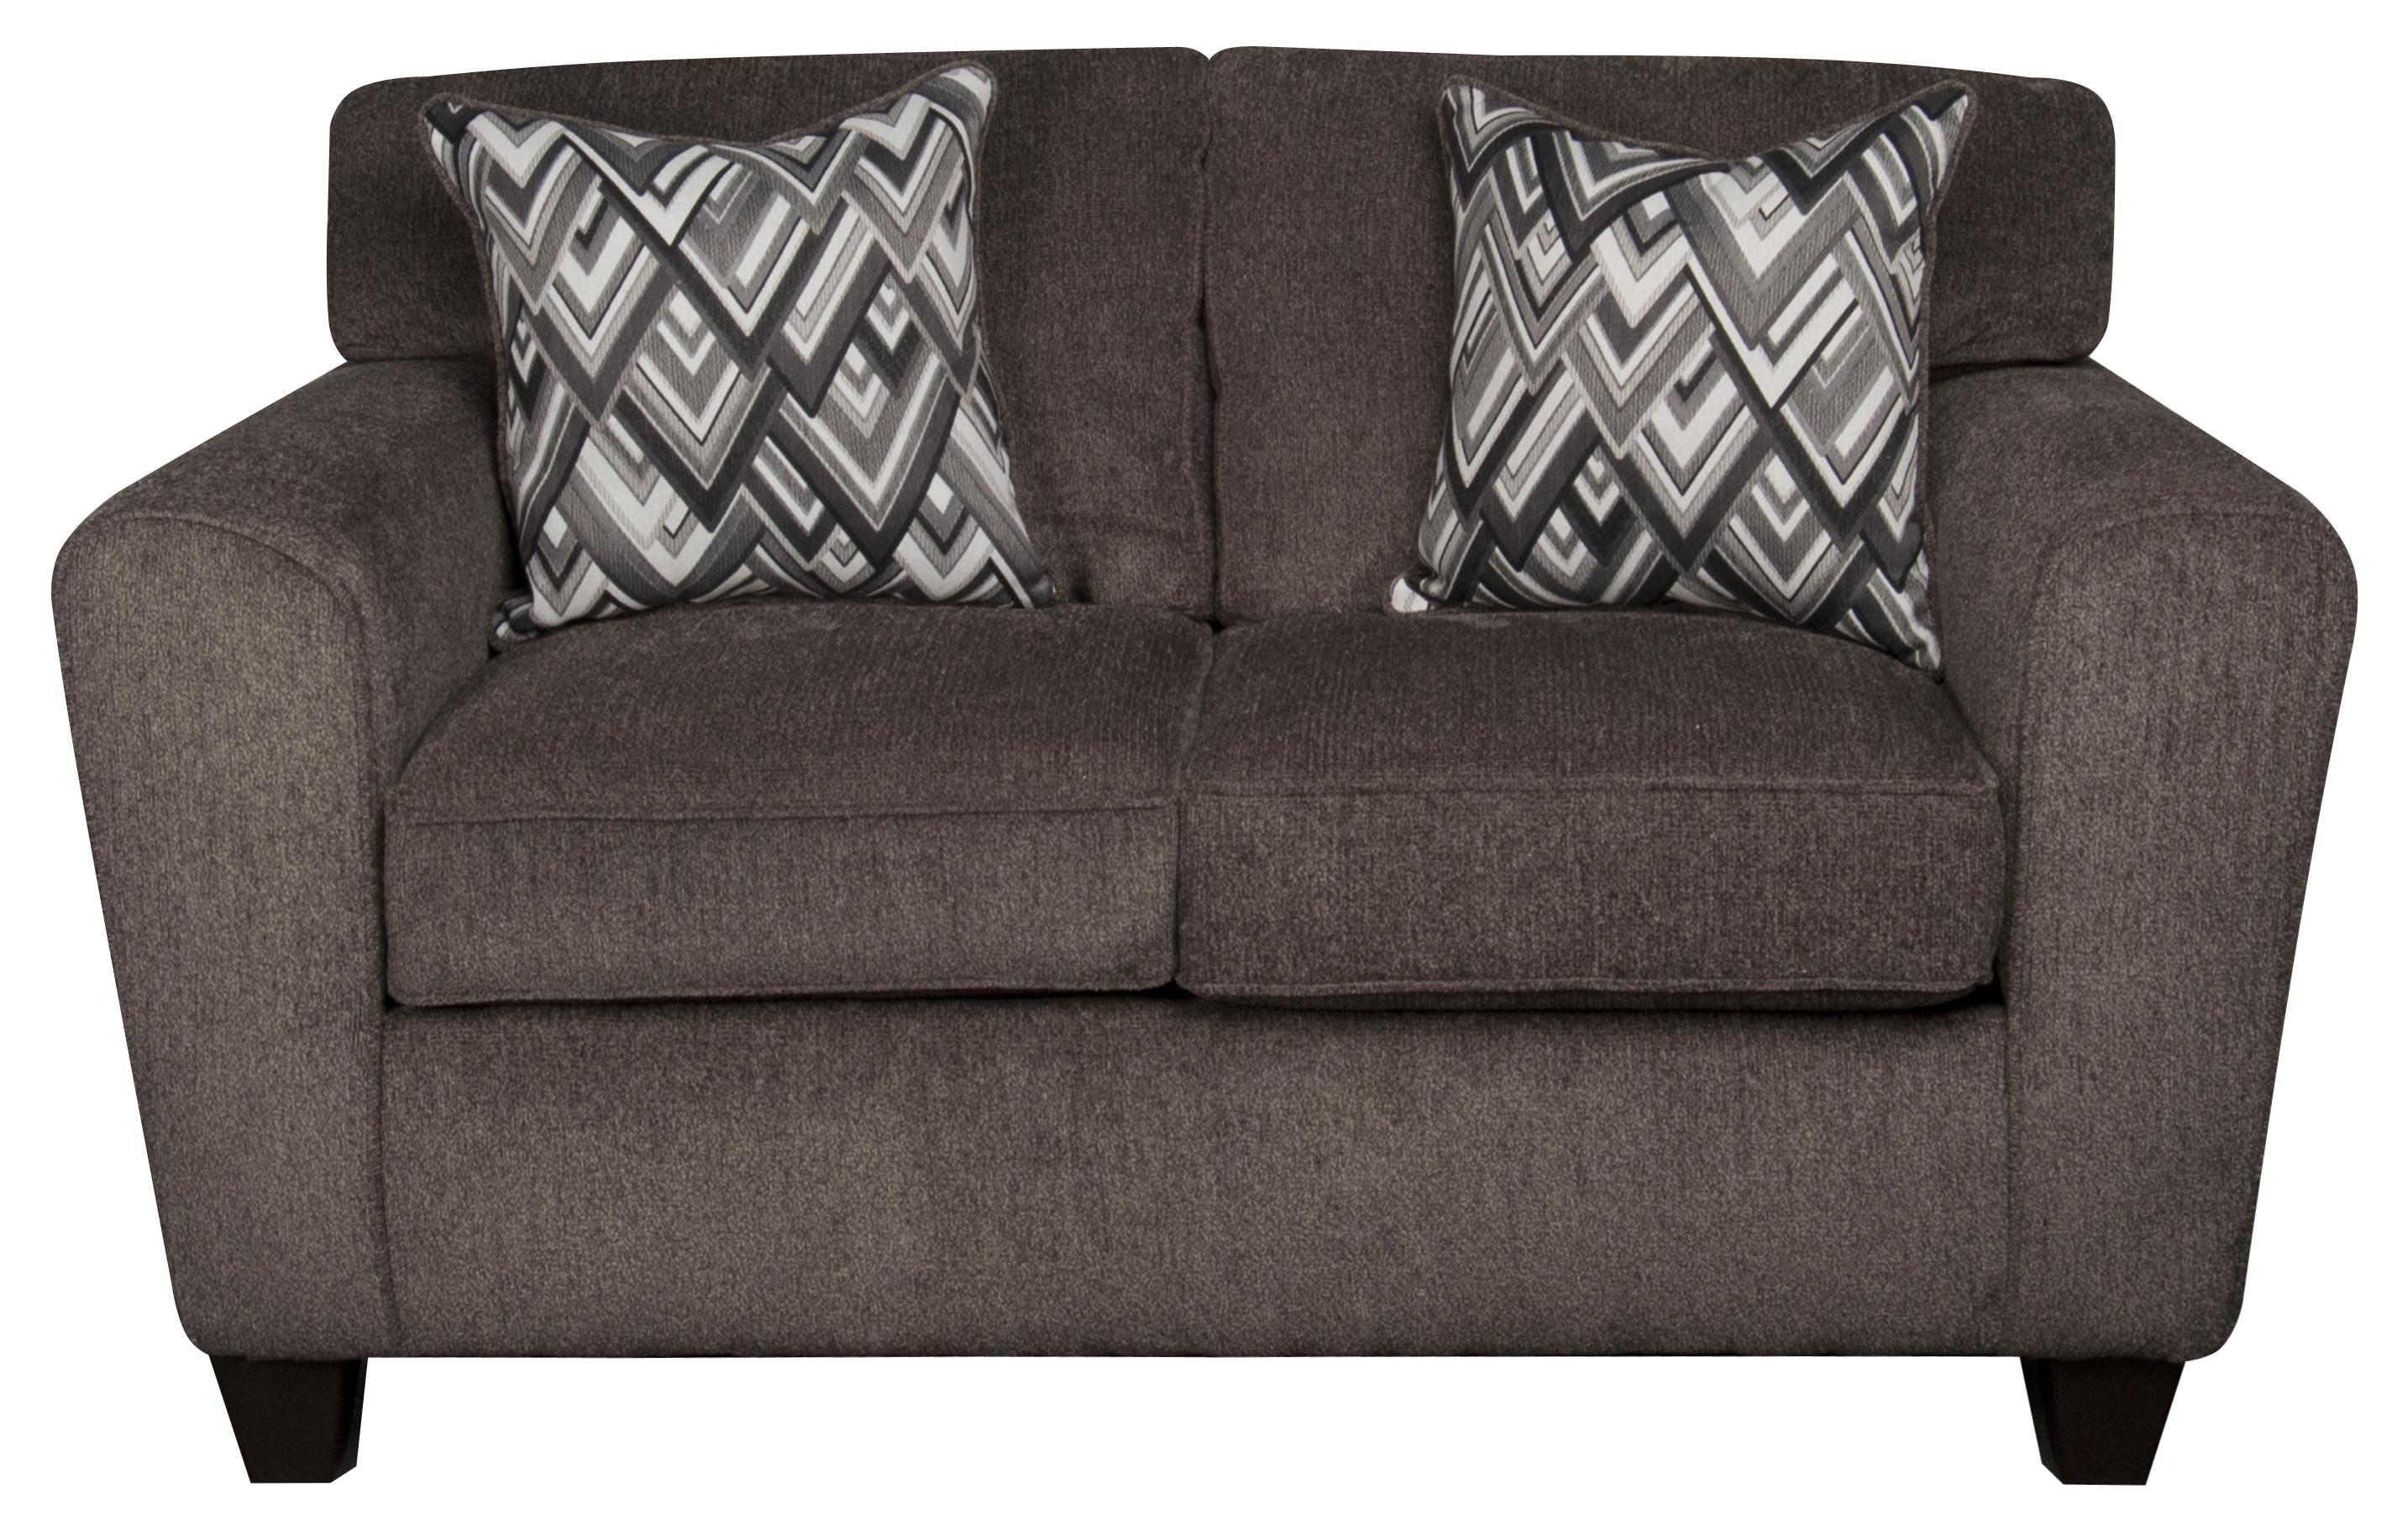 Morris Home Furnishings Wilson Wilson Loveseat - Item Number: 371057474